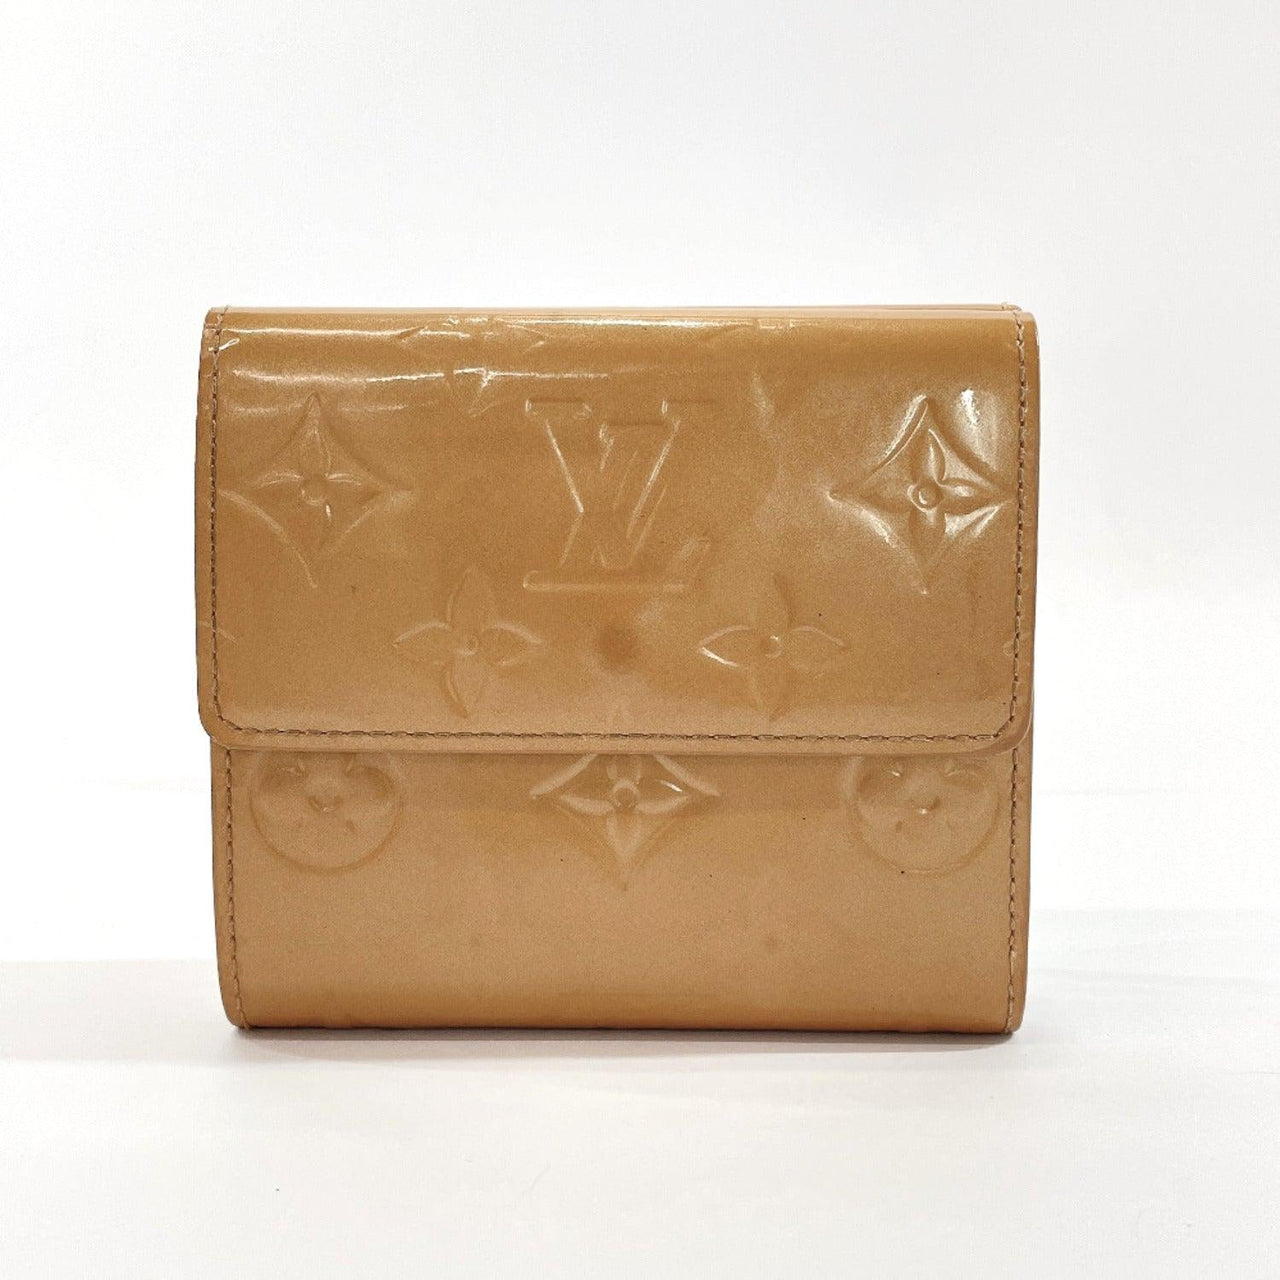 LOUIS VUITTON purse M91167 Portonet Bie Cult Credit Monogram Vernis beige Women Used